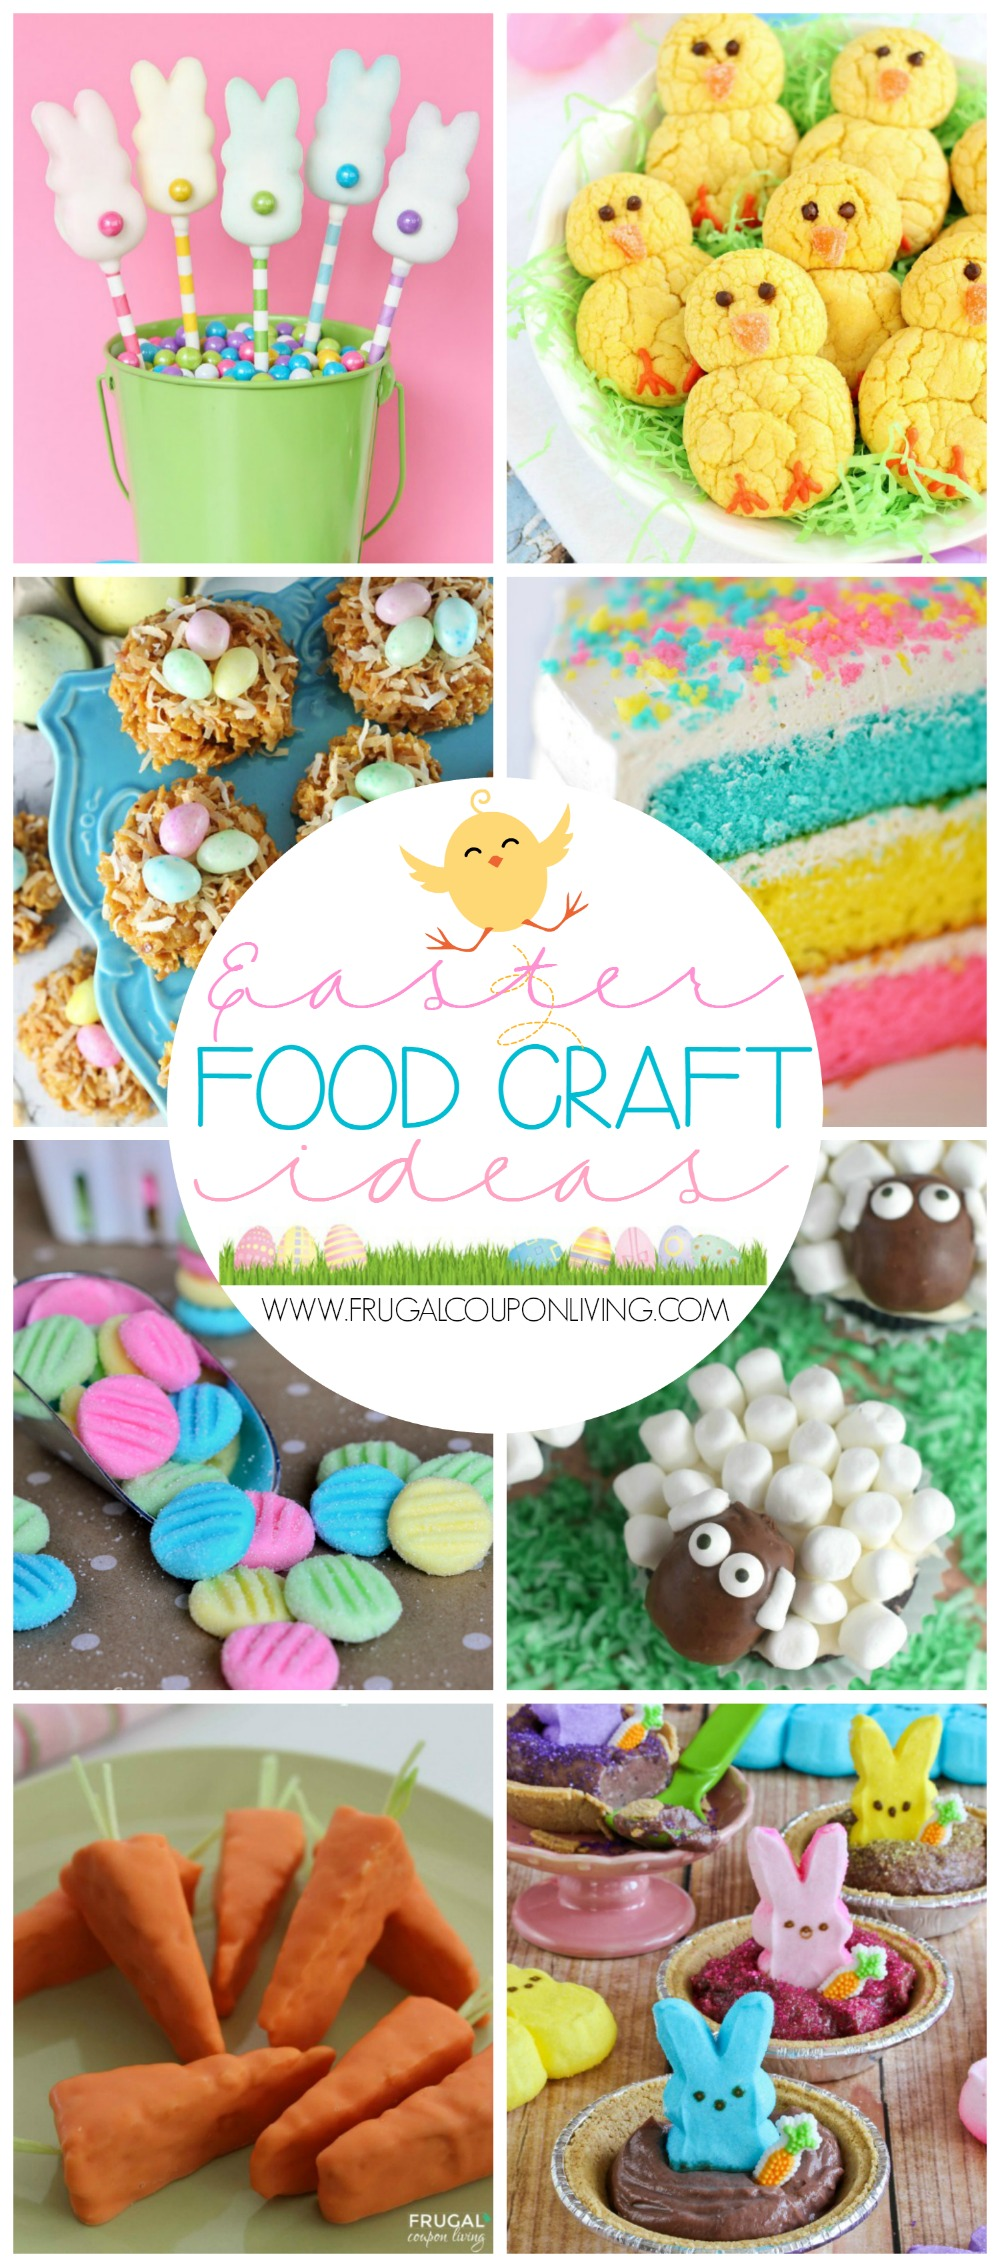 Easter-Food-Craft-collage-frugal-coupon-living